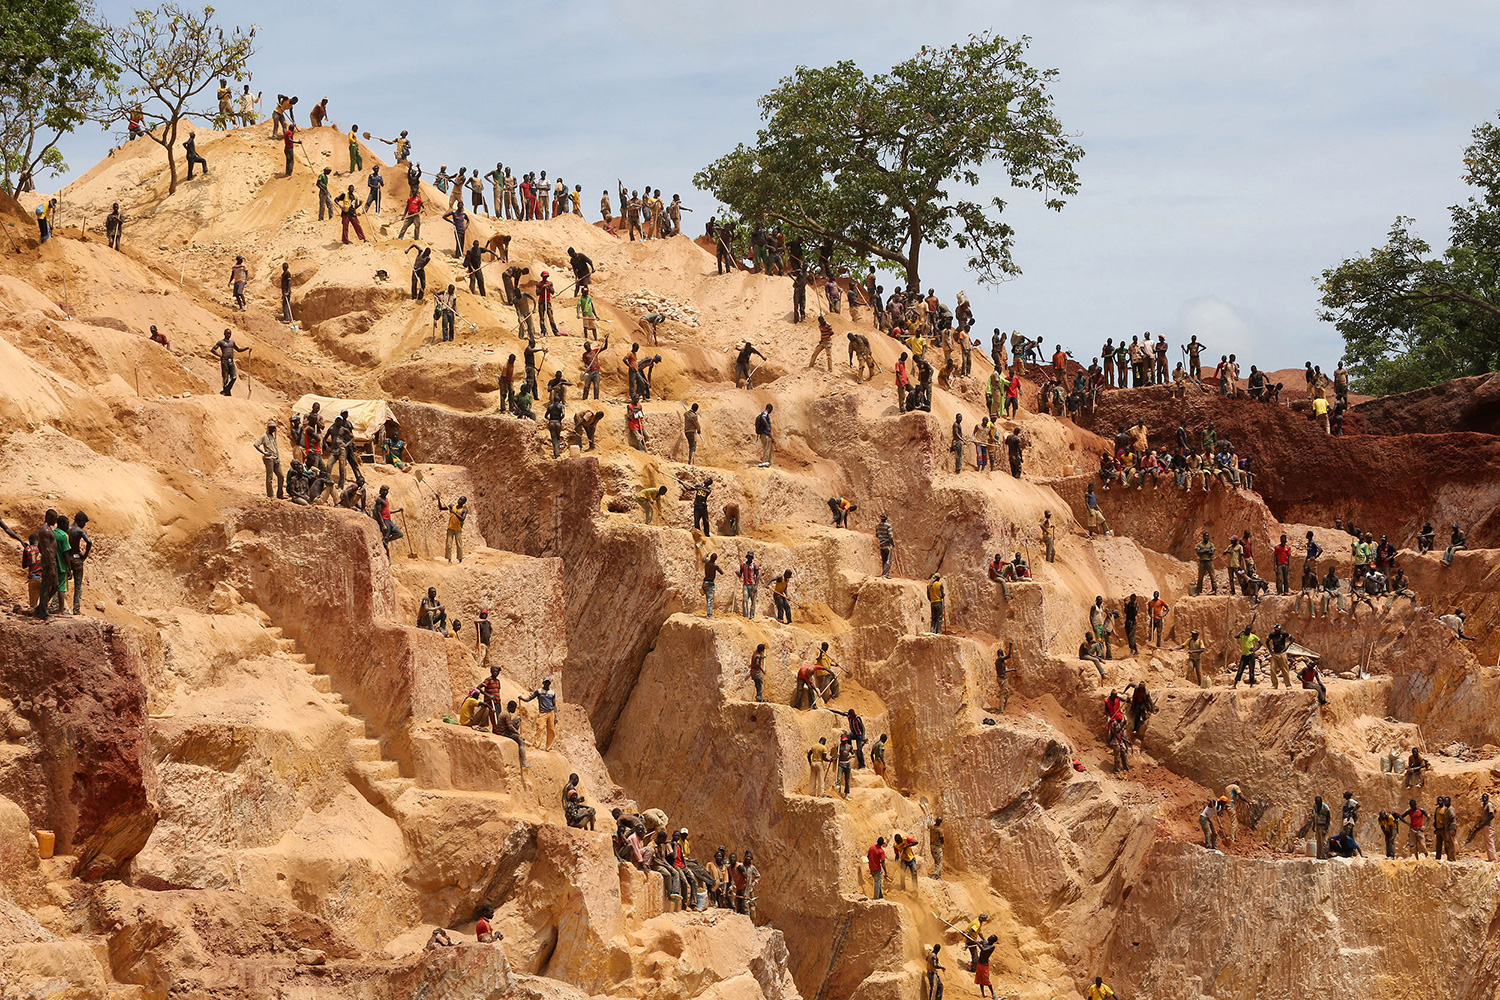 Picture shows the steppes of a small mountain-sized mine cut into the red earth with tiny figures of people everywhere on the different levels.